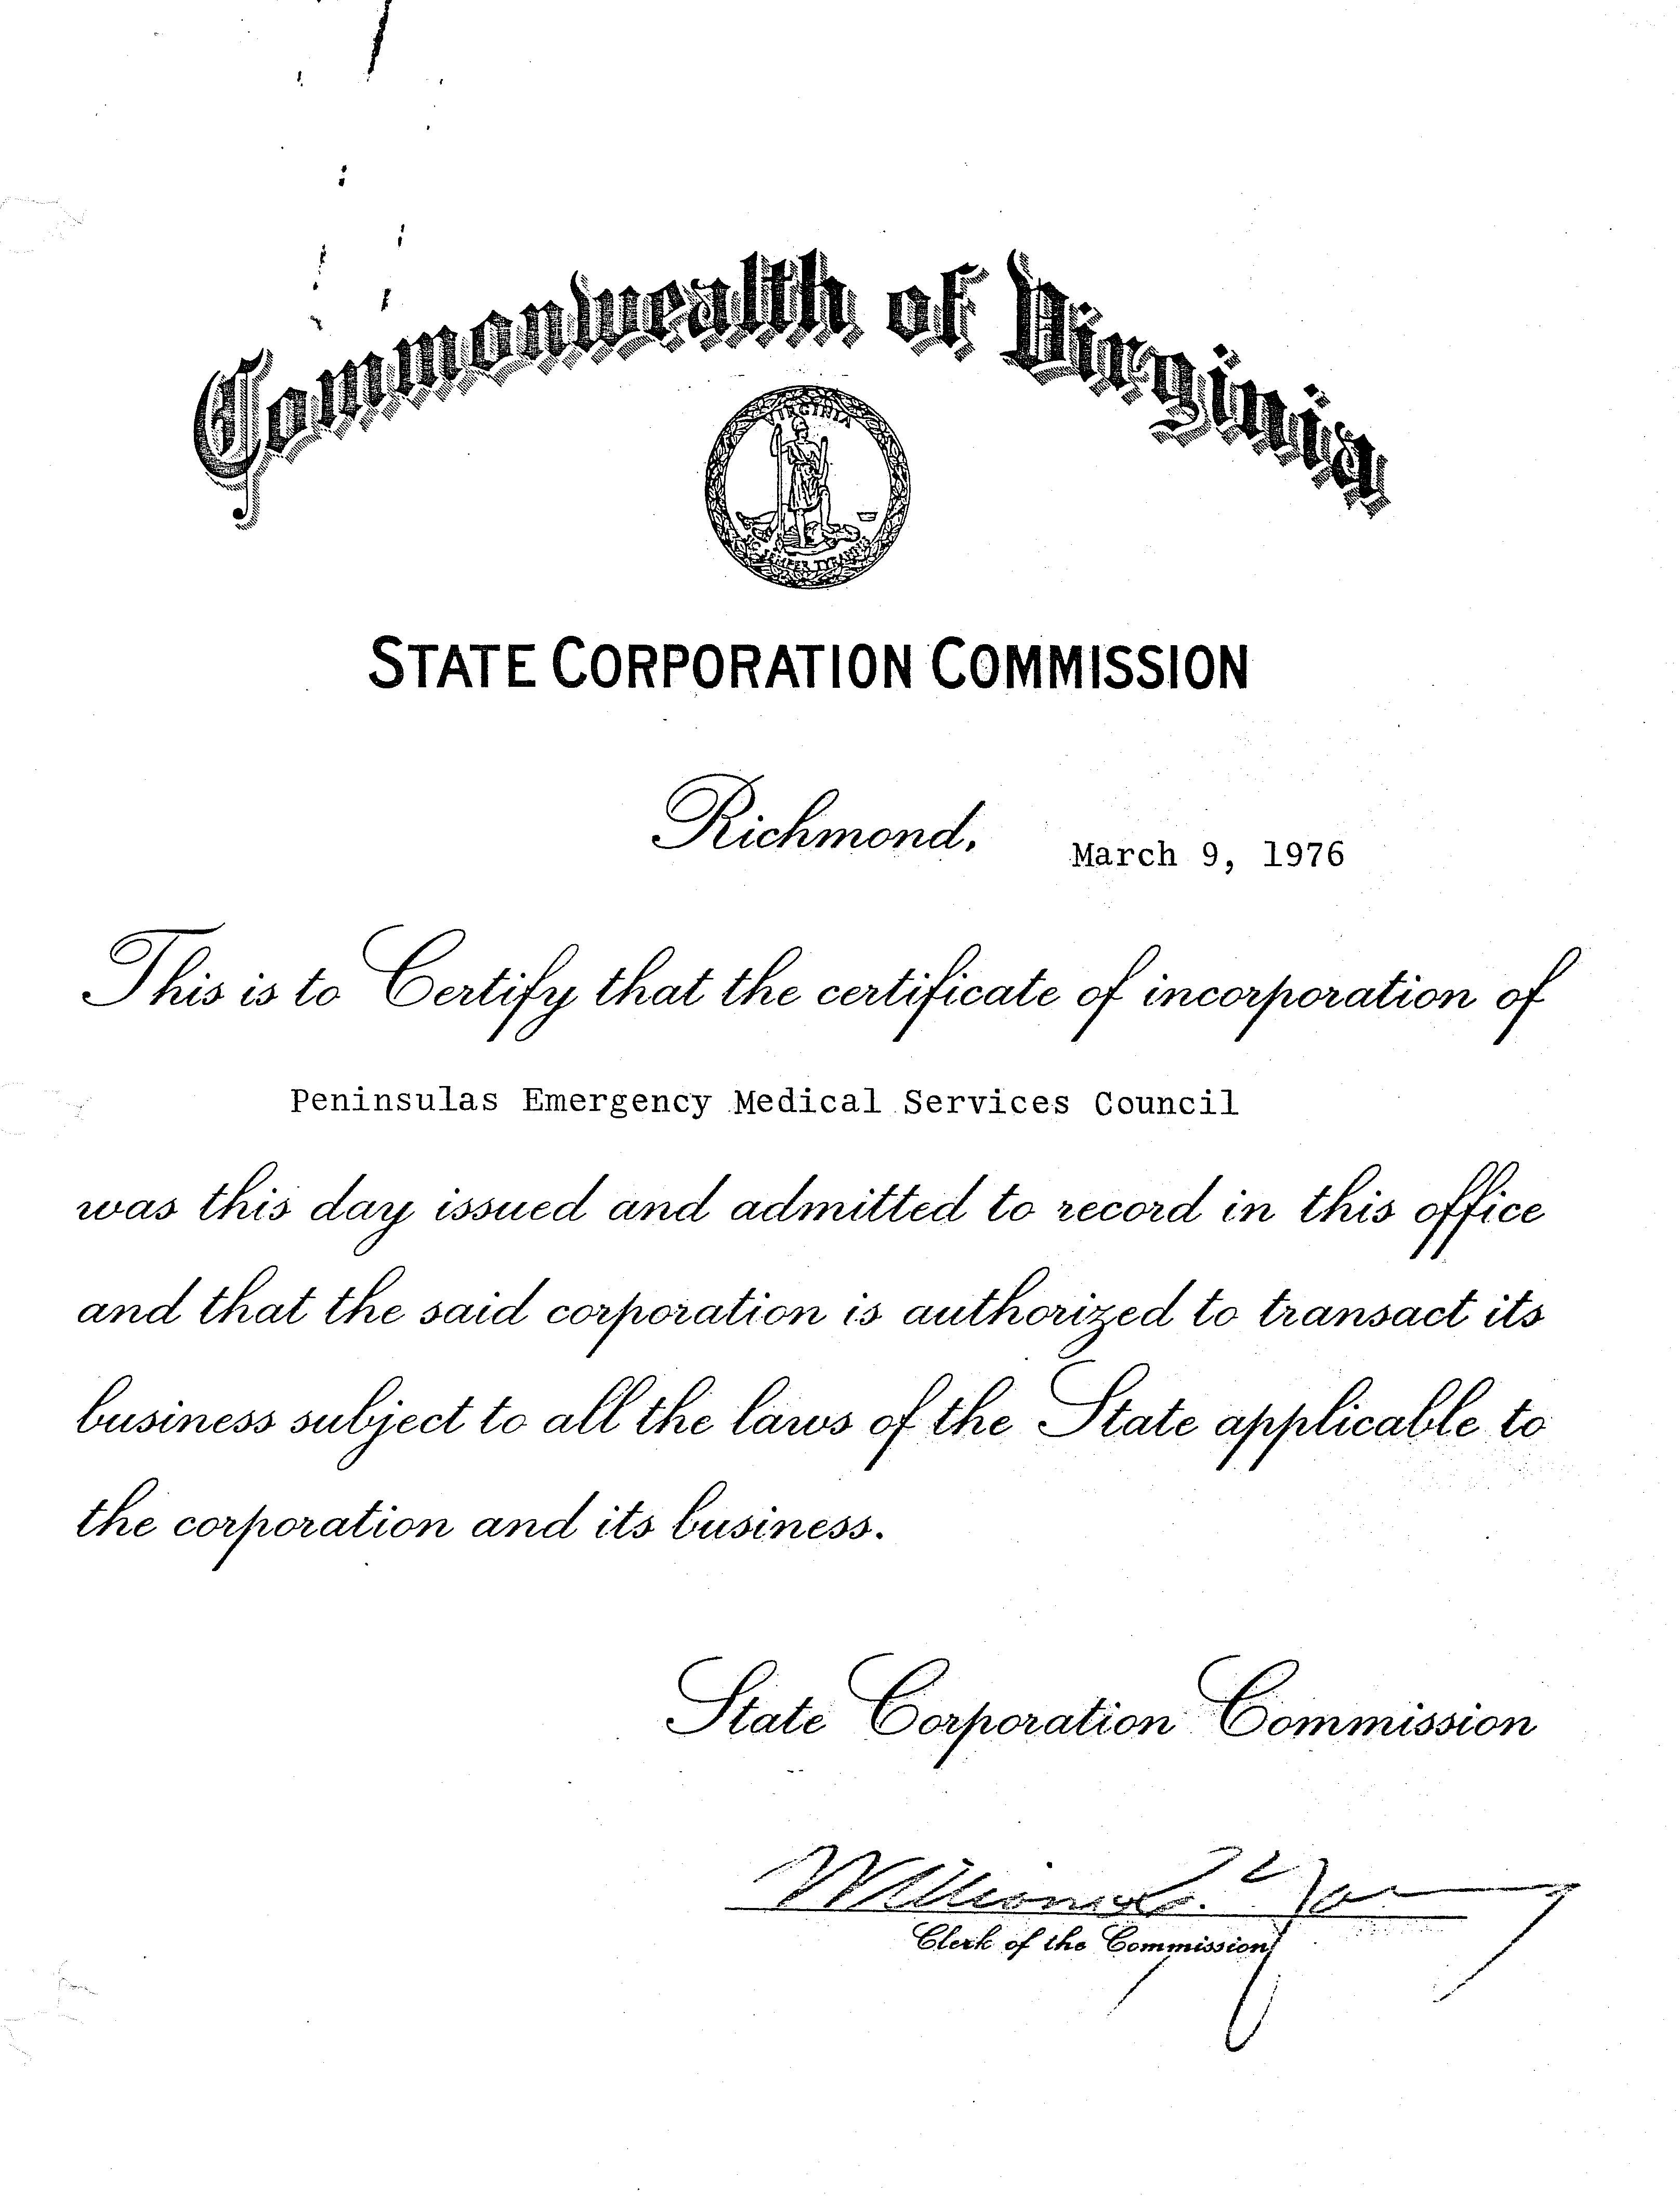 PEMS Articles of Incorporation Page 1